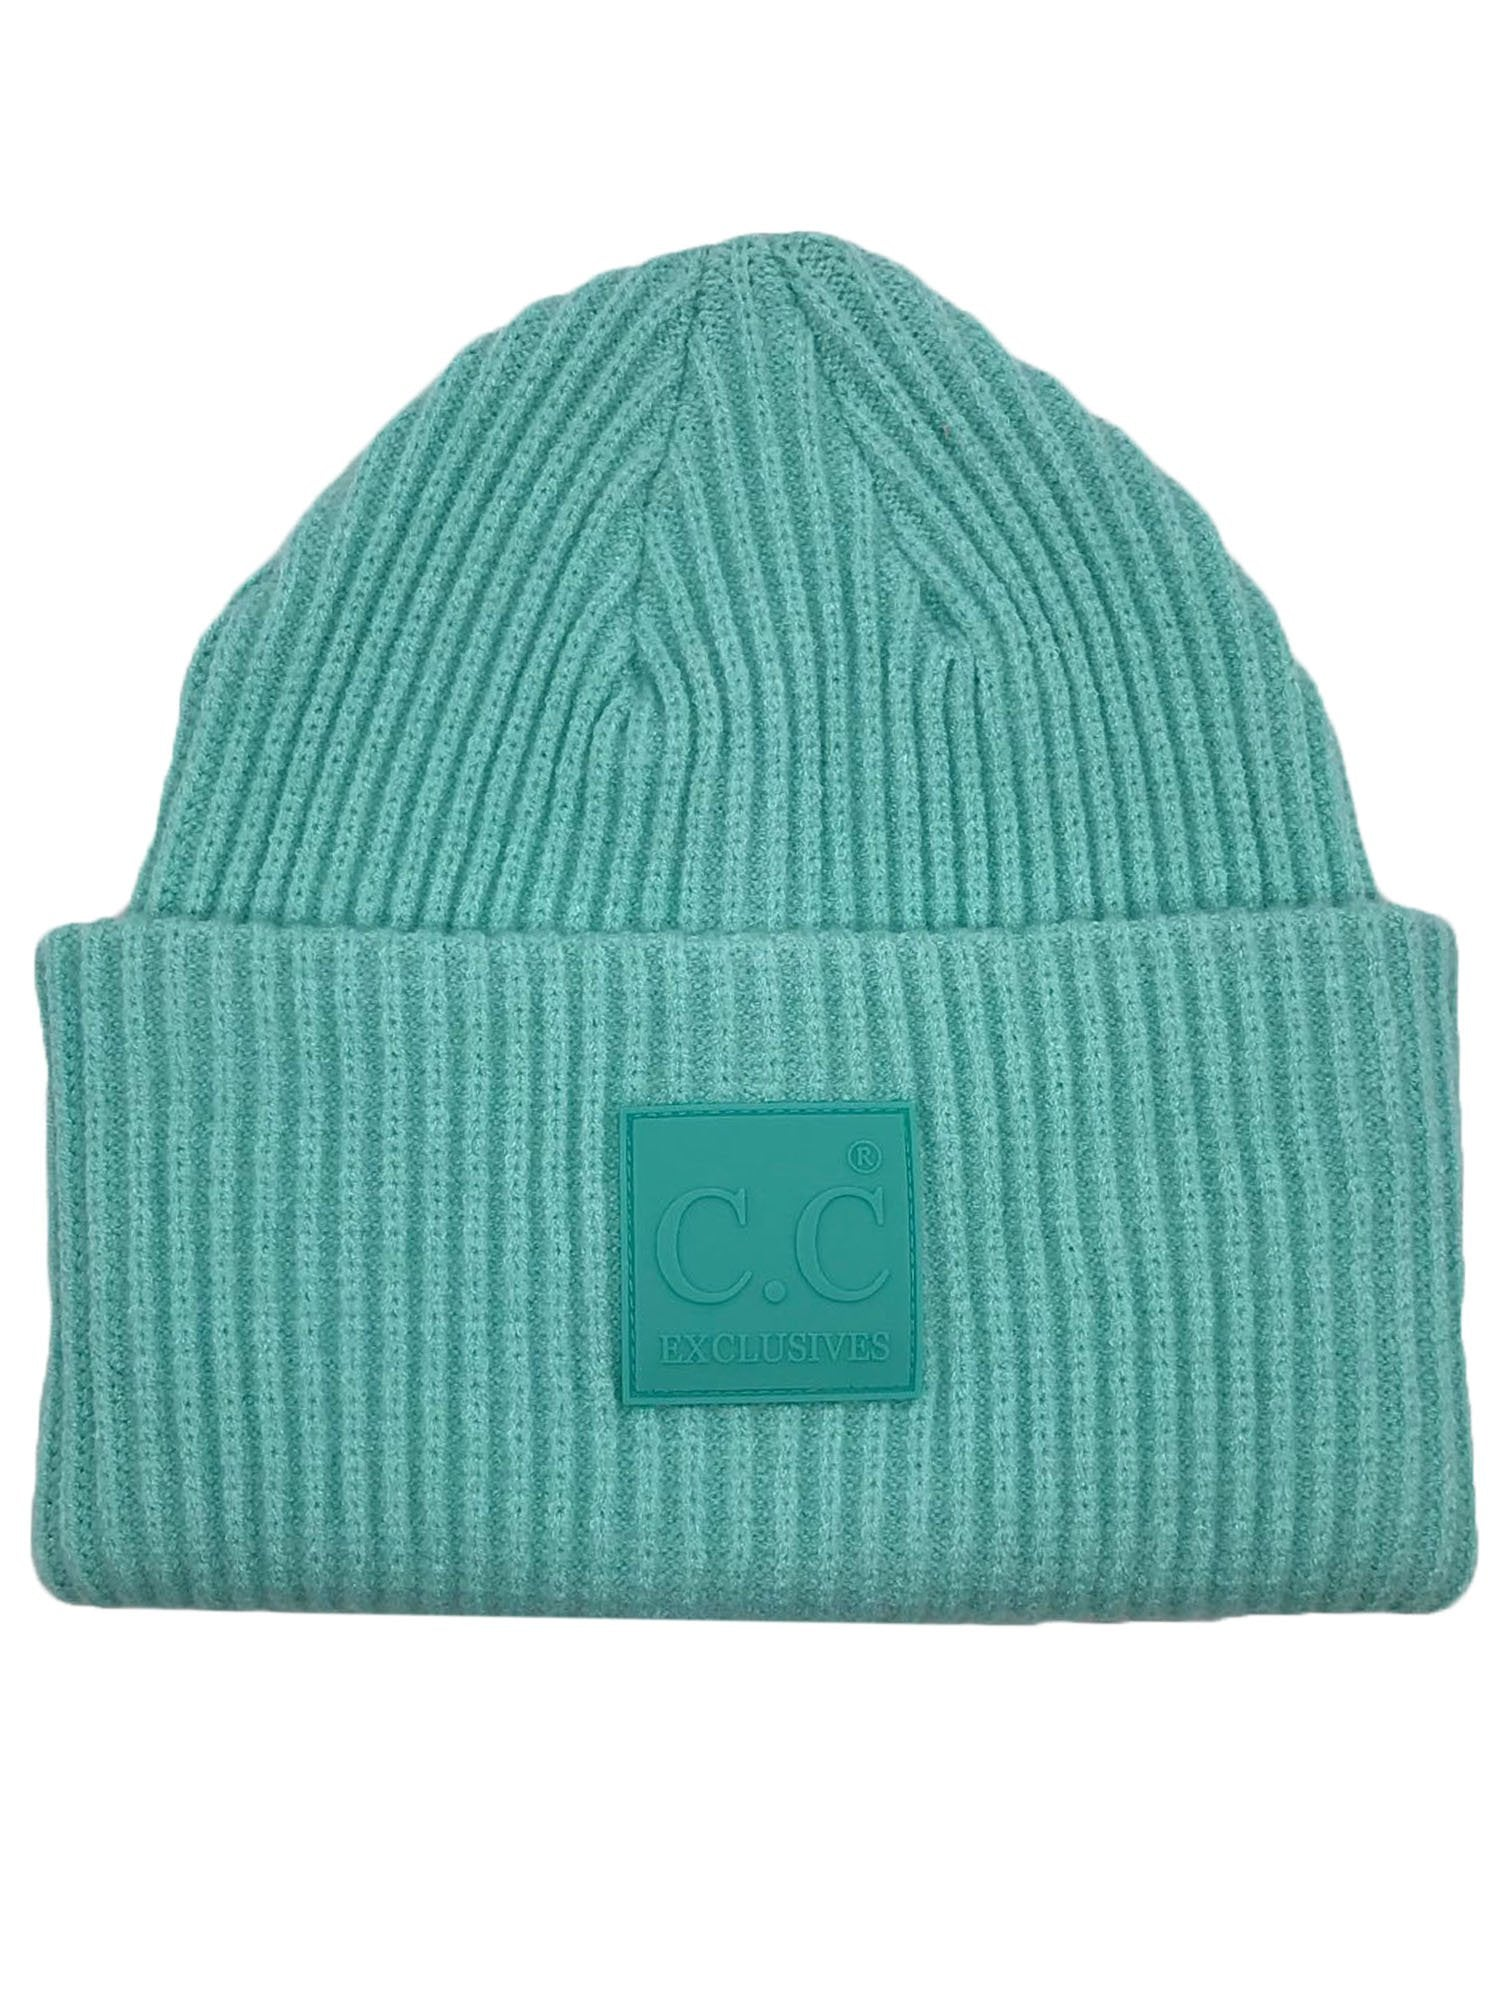 HAT-7007 Beanie with Rubber Patch Mint Green